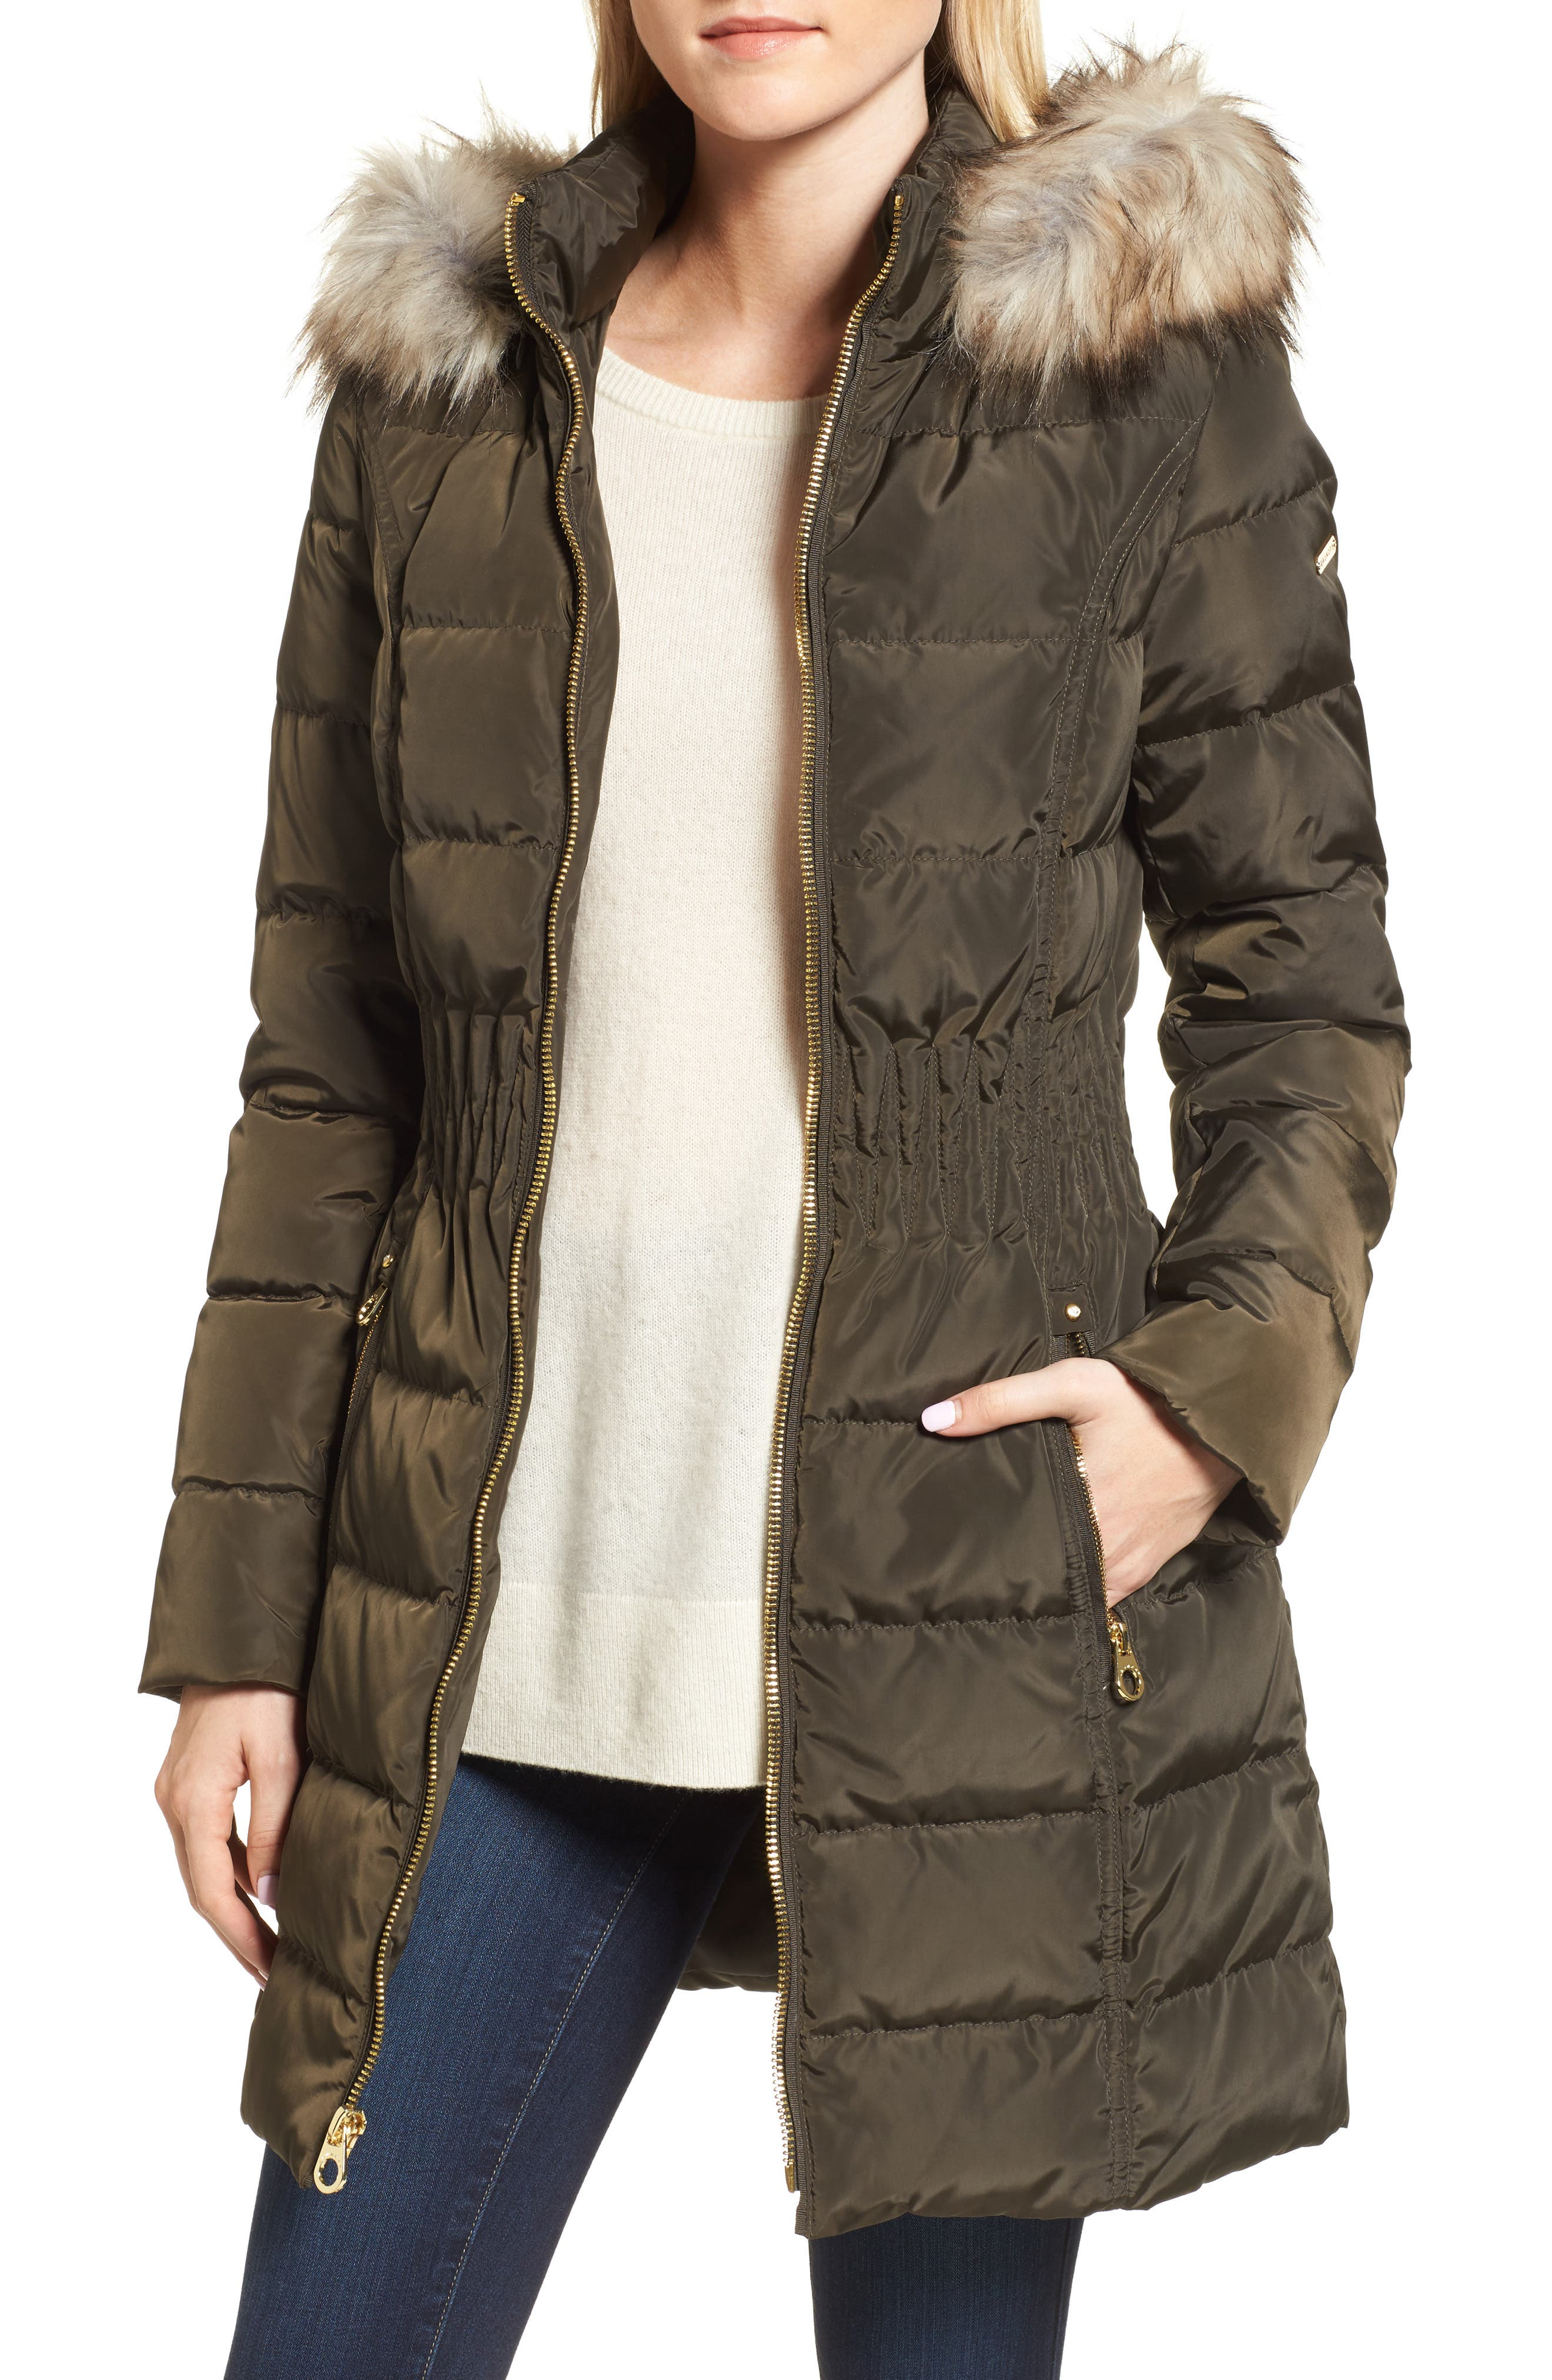 Alternate Image 1 Selected - Laundry by Shelli Segal Hooded Quilted Jacket with Faux Fur Trim